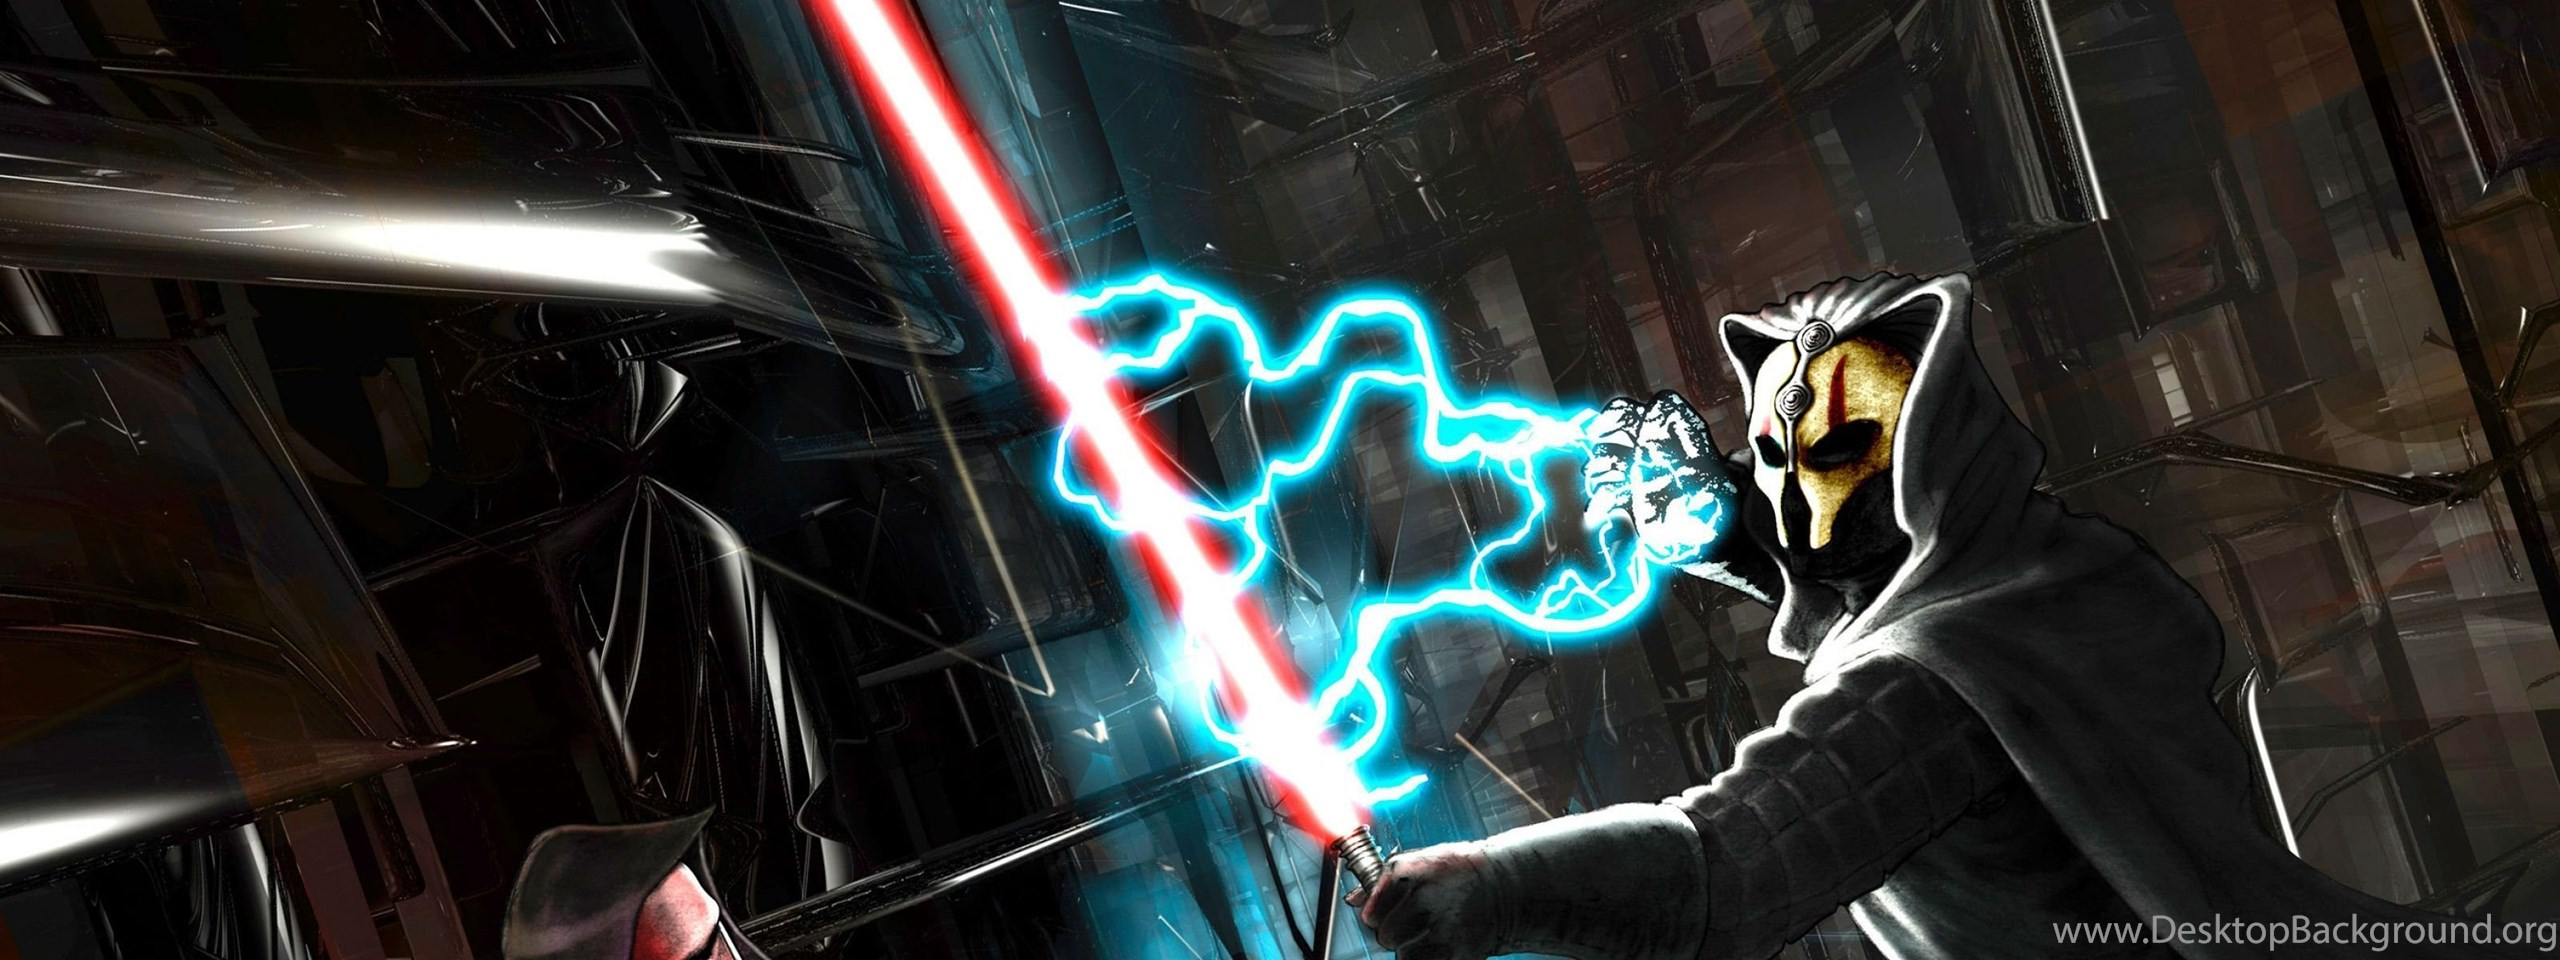 Download Wallpapers 3840x1200 Star Wars Knights Of The Old Desktop Background